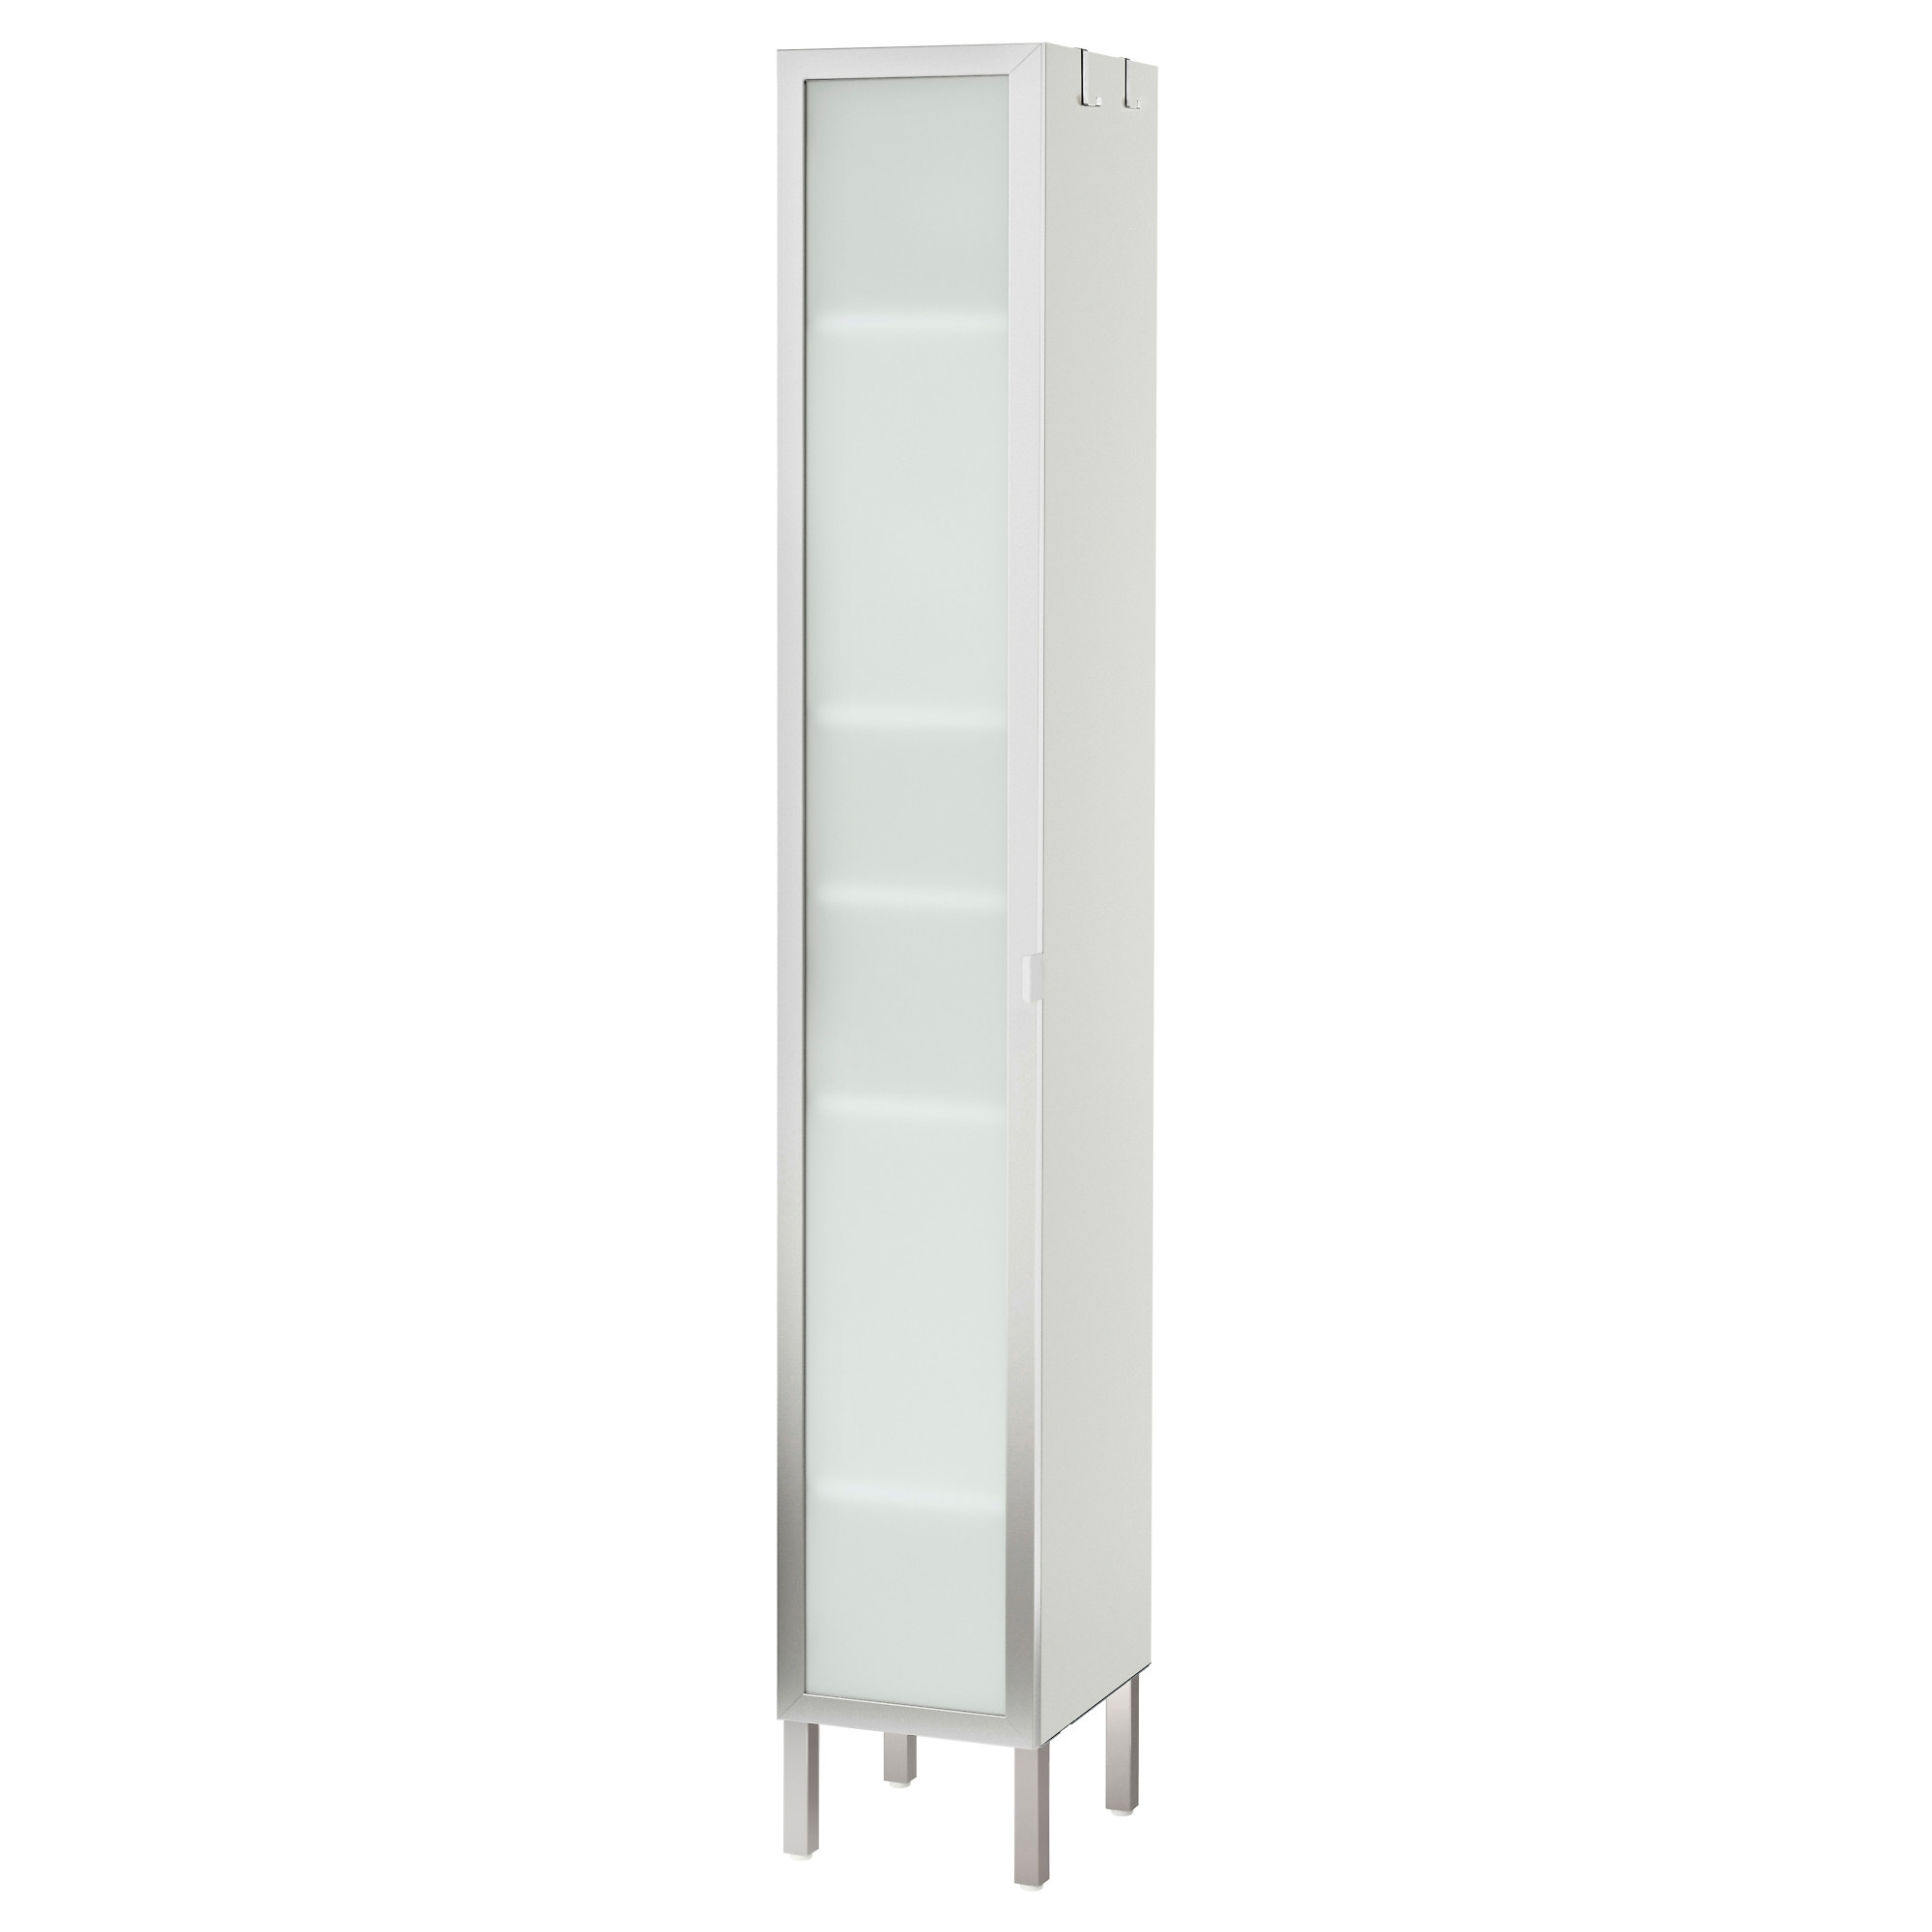 Tall Bathroom Cabinets Bathroom Cabinets  High & Tall  Ikea